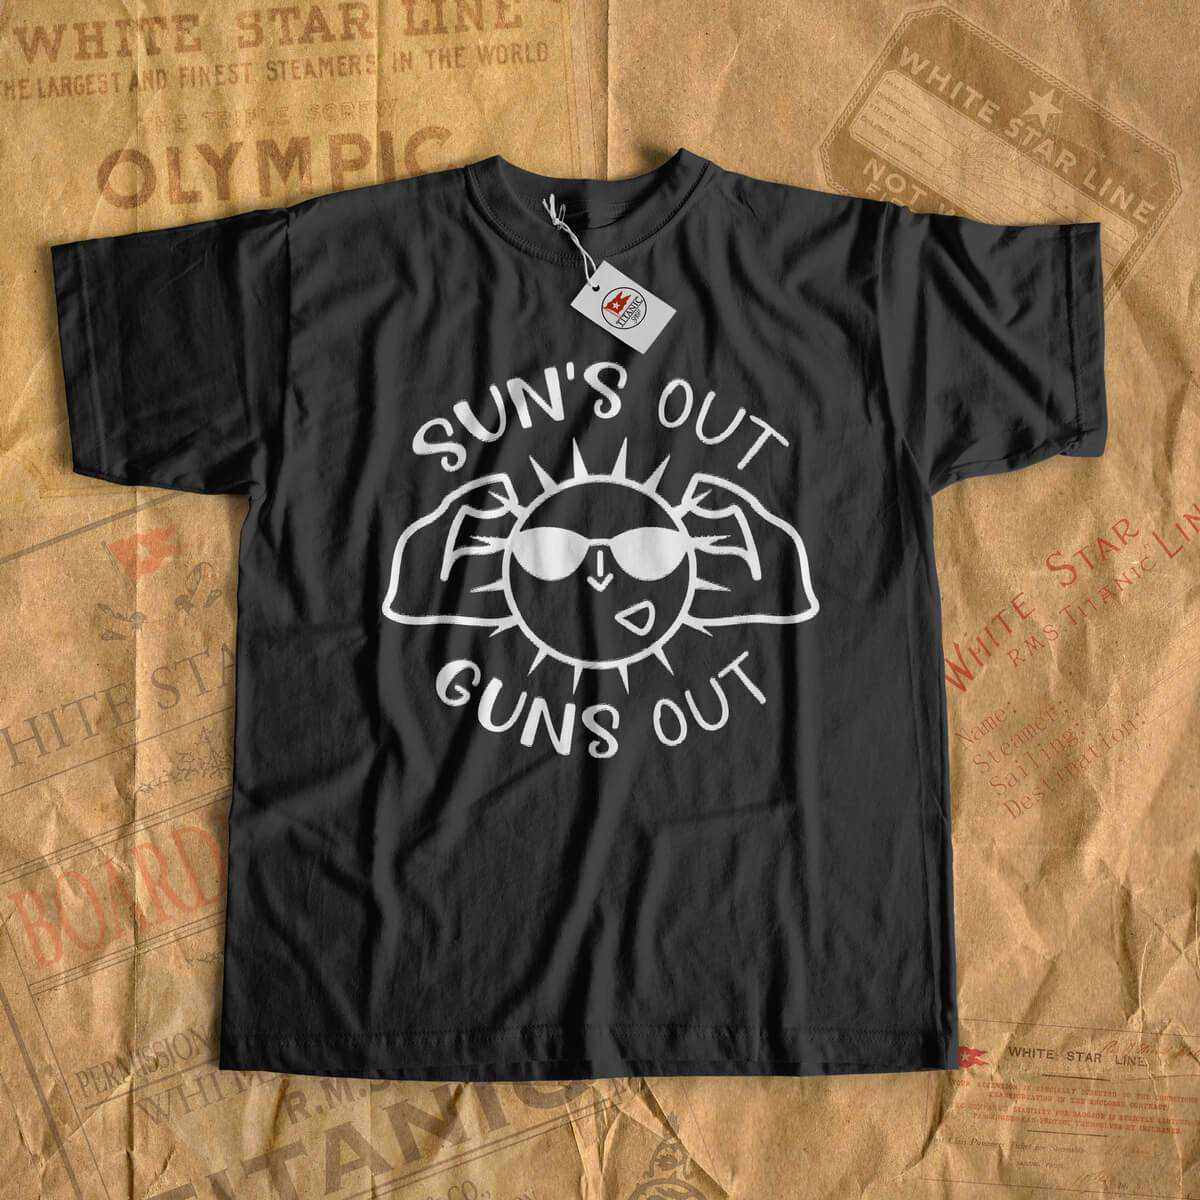 Suns out - guns out - summer cruise t-shirt, tshirt for men and women, gift for kids-T-shirt new-Printify-cruise-sea-ocean-nautical-tee-shirt-tshirt-Titanic shop